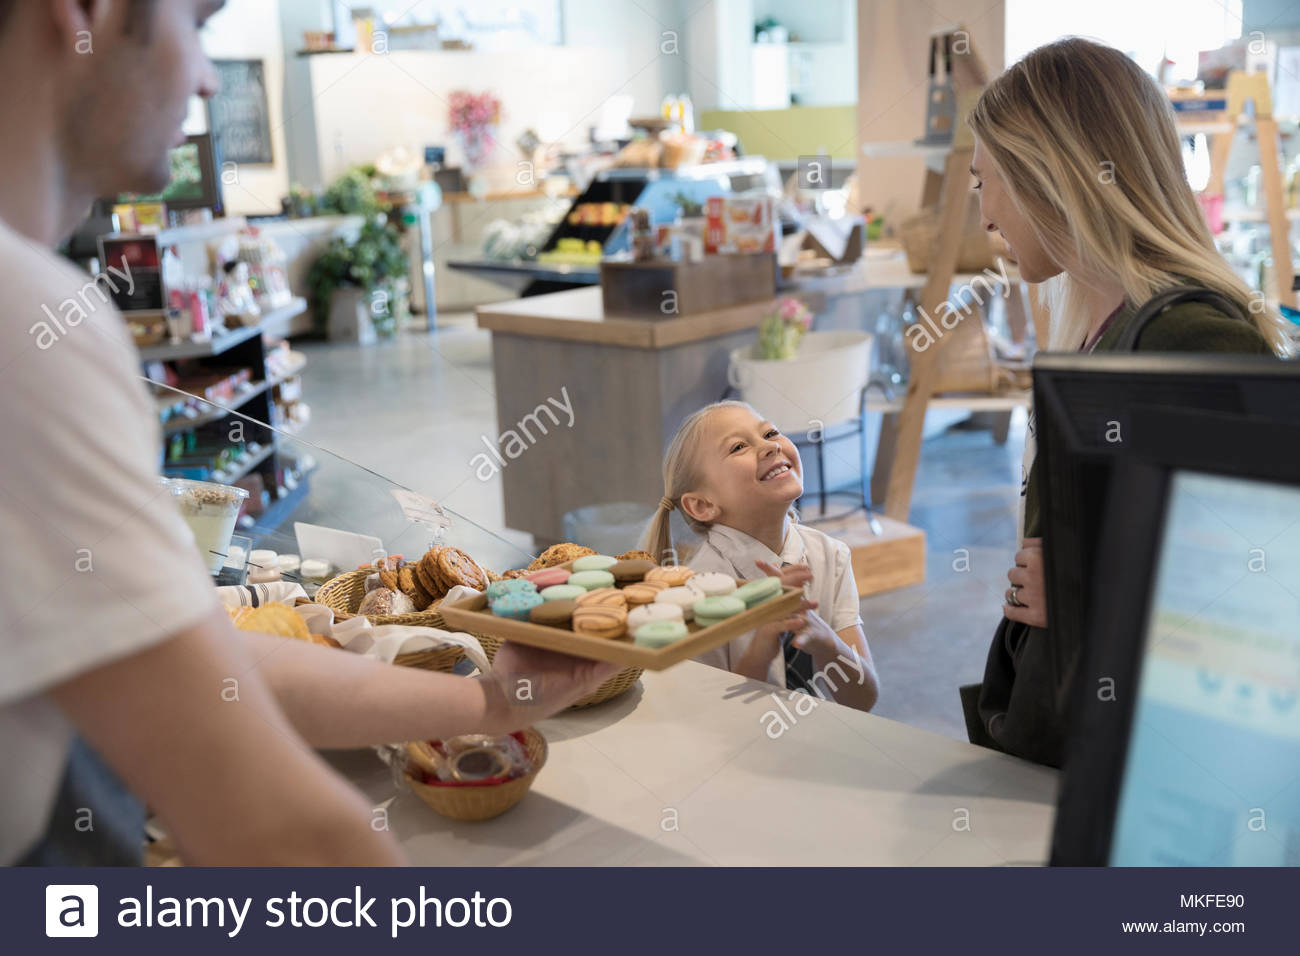 Worker offering eager girl macaron cookie in bakery at market - Stock Image